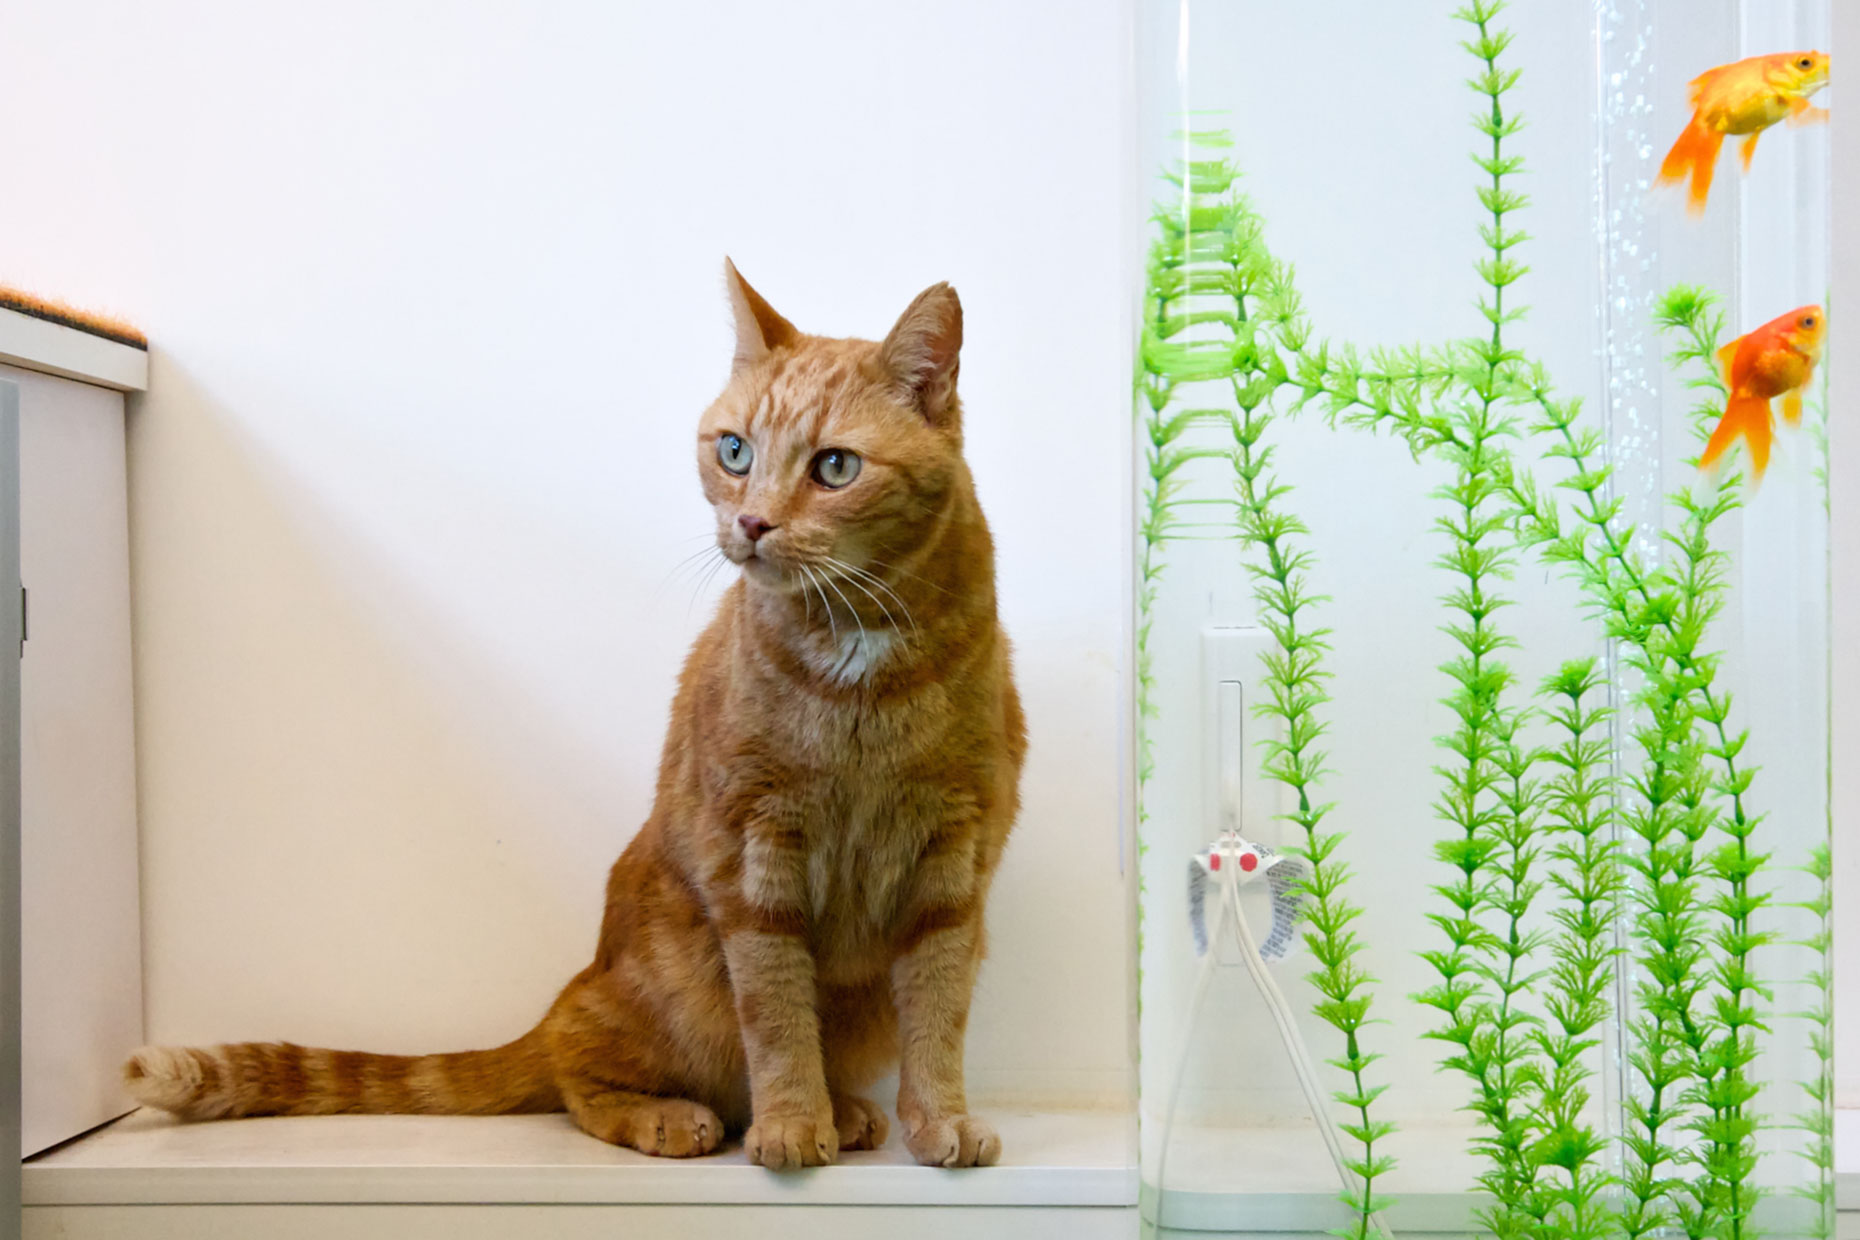 Cat and Pet Photography | Orange Cat at Goldfish Bowl by Mark Rogers